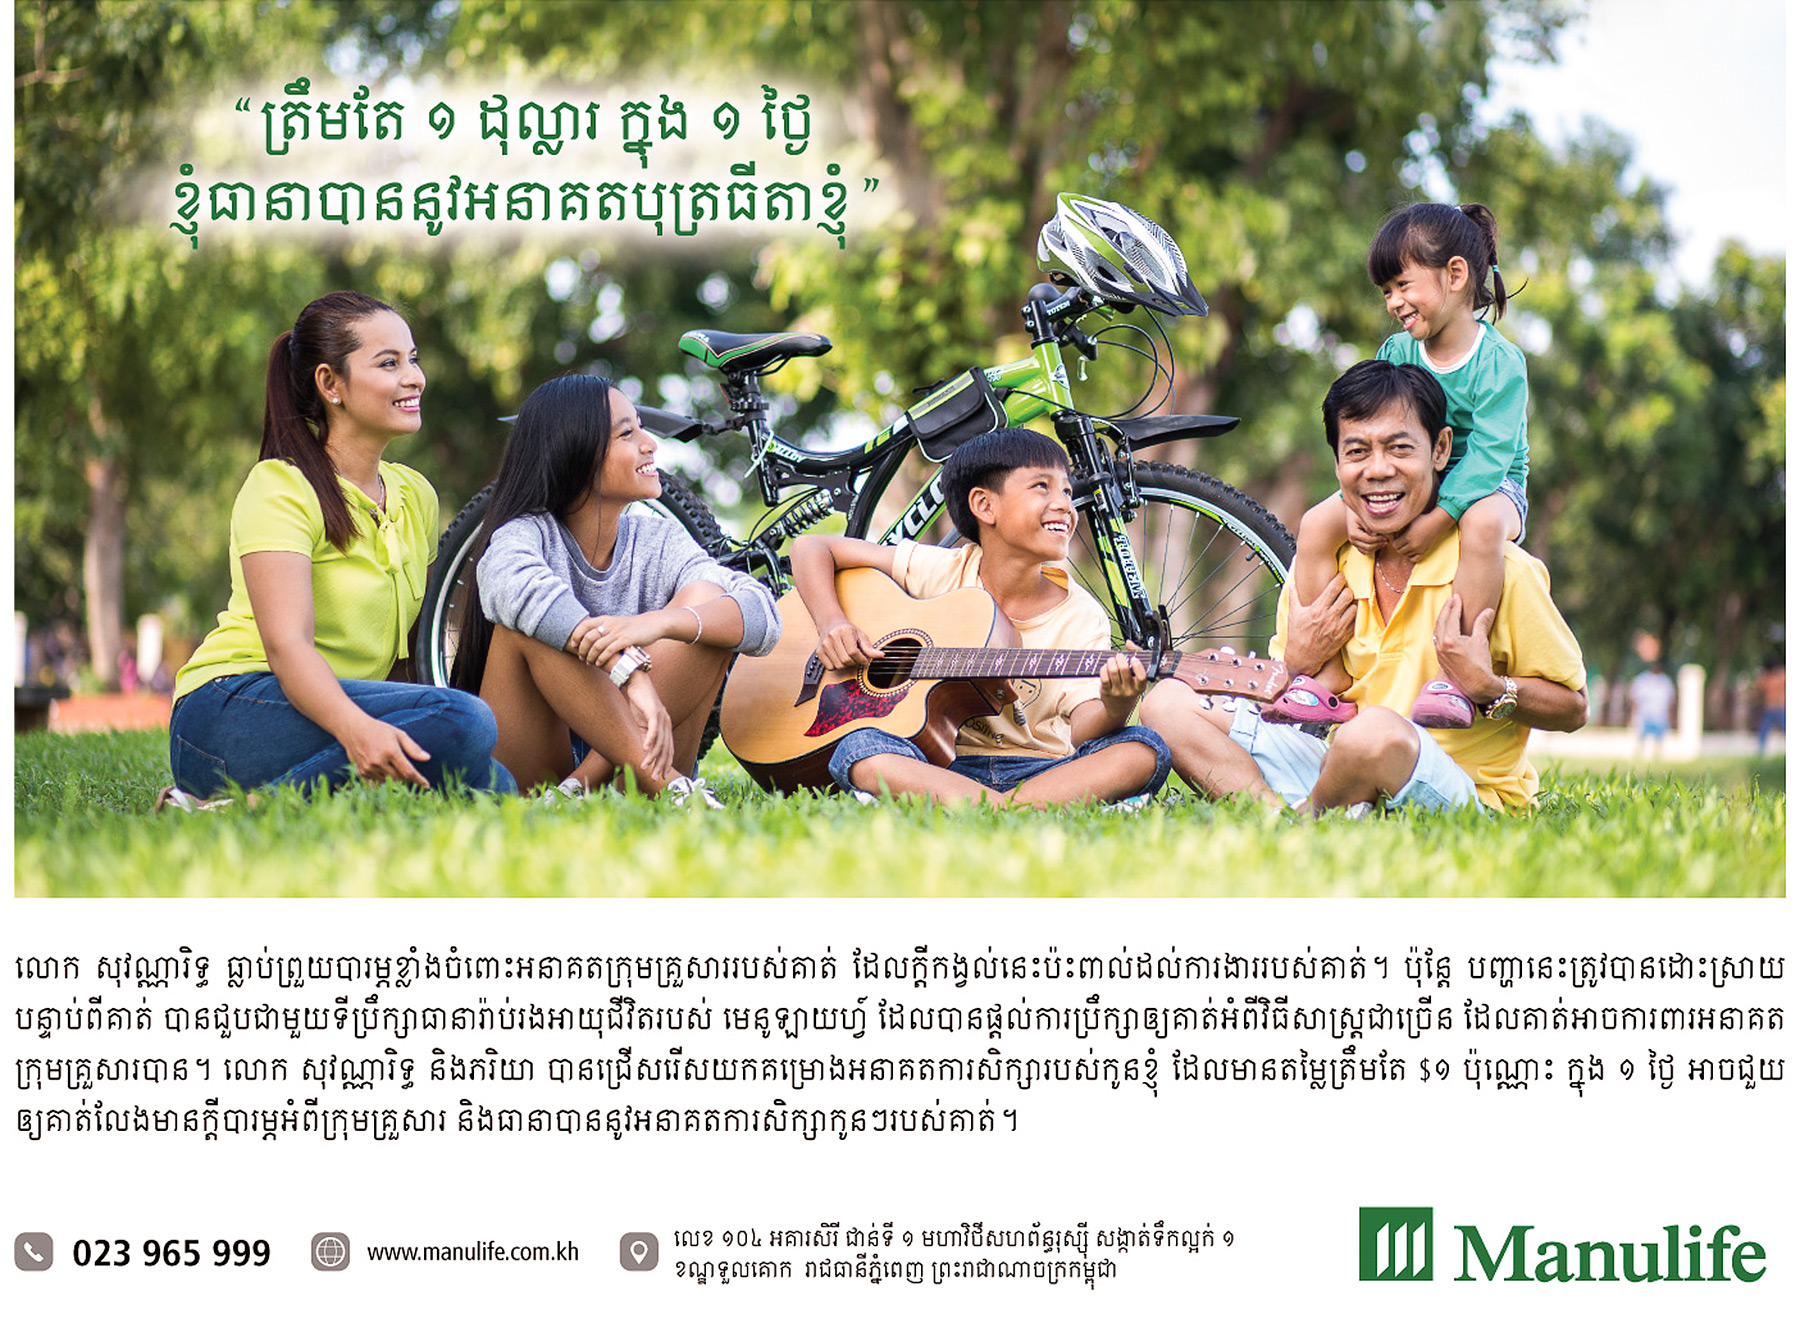 manulife-photo-shoot-phnom-penh-01.jpg